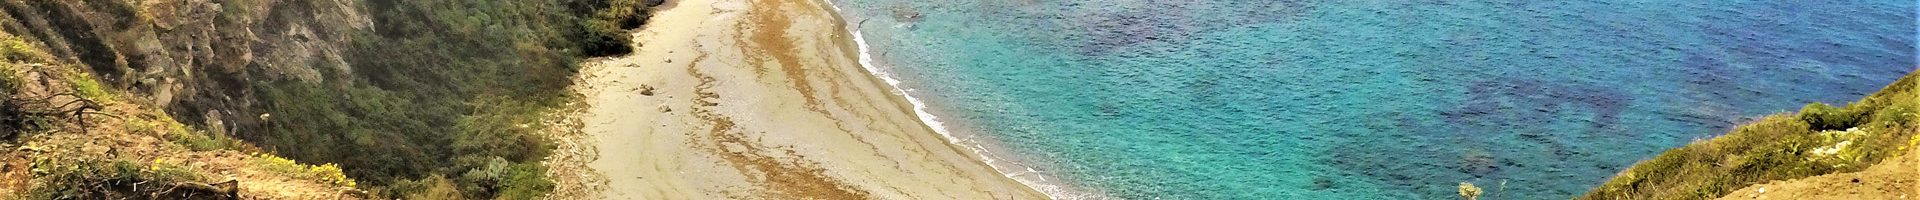 Pocket Beaches of the Province of Messina